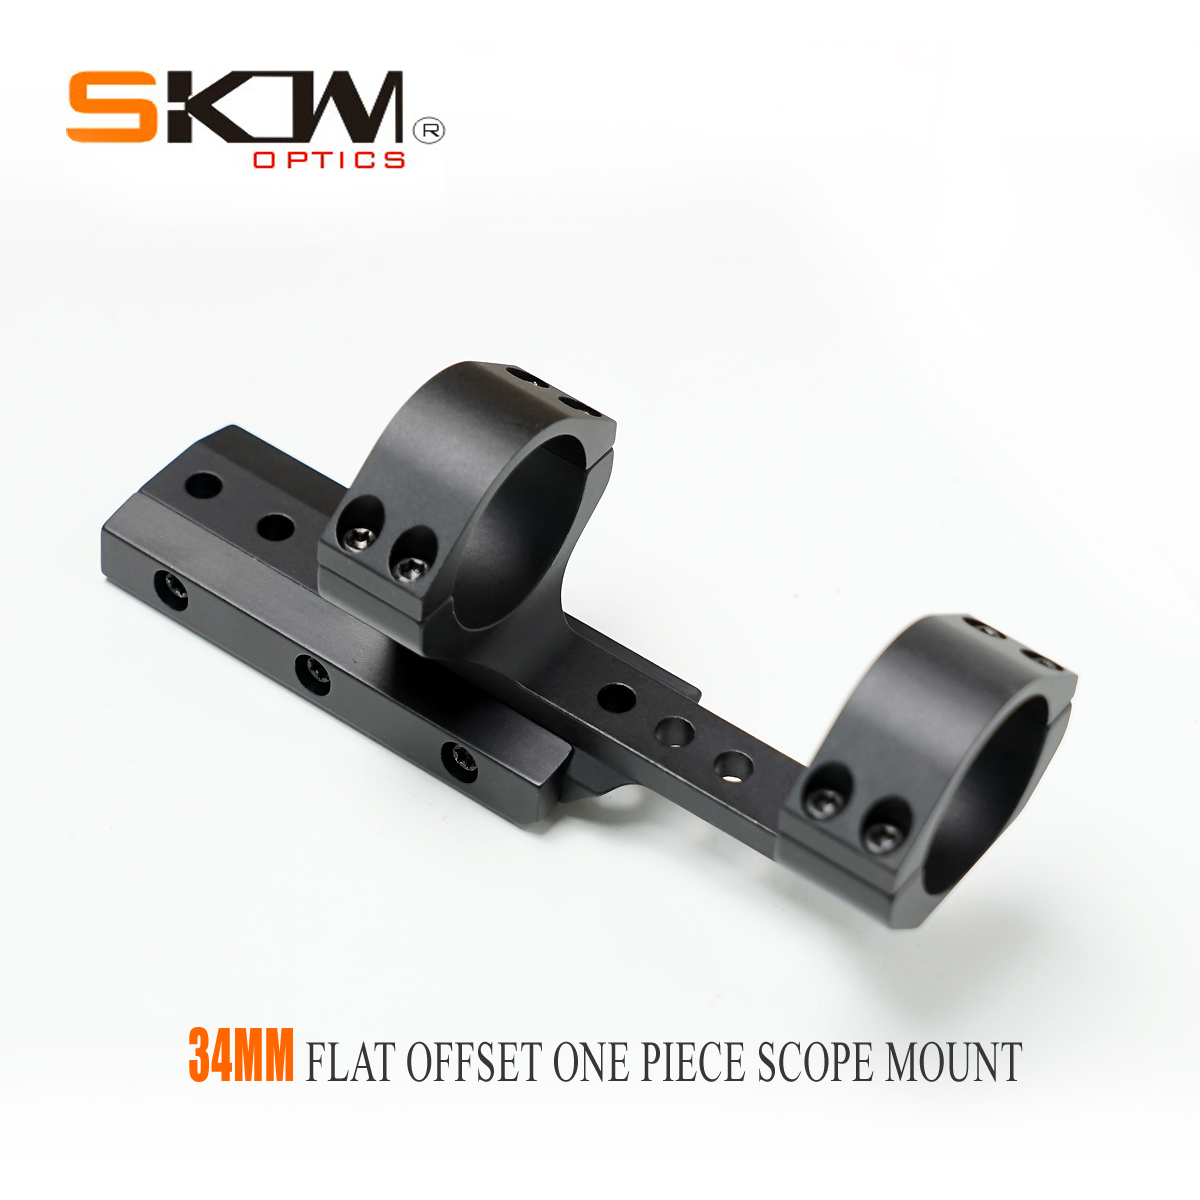 SKW AR15 M4 Flat Offset One Piece Scope Mount 34mm Mount For 1913 Picatinny Rails  34MM Rings